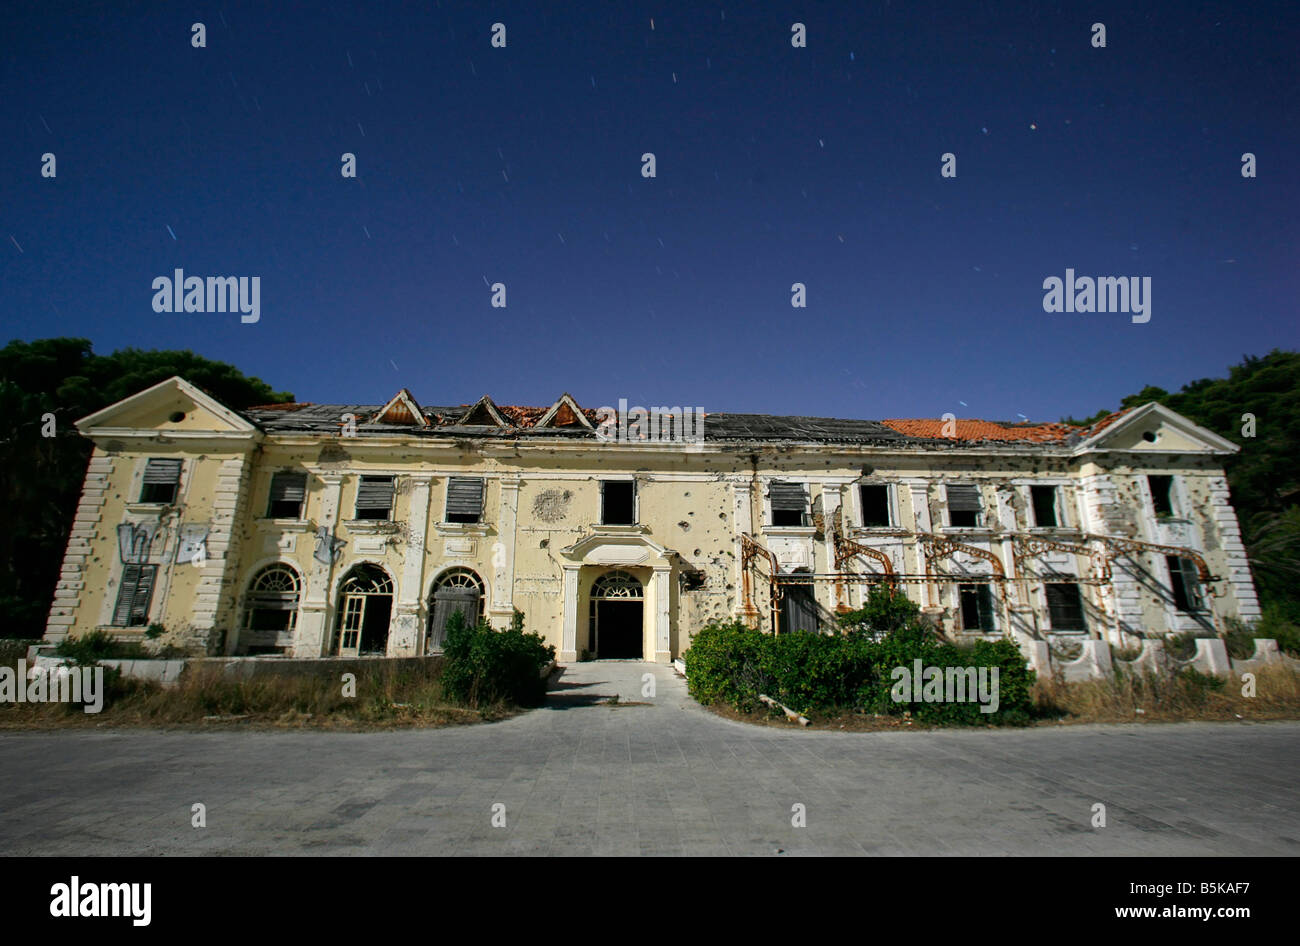 Abandoned hotel after the war in Croatia - Stock Image